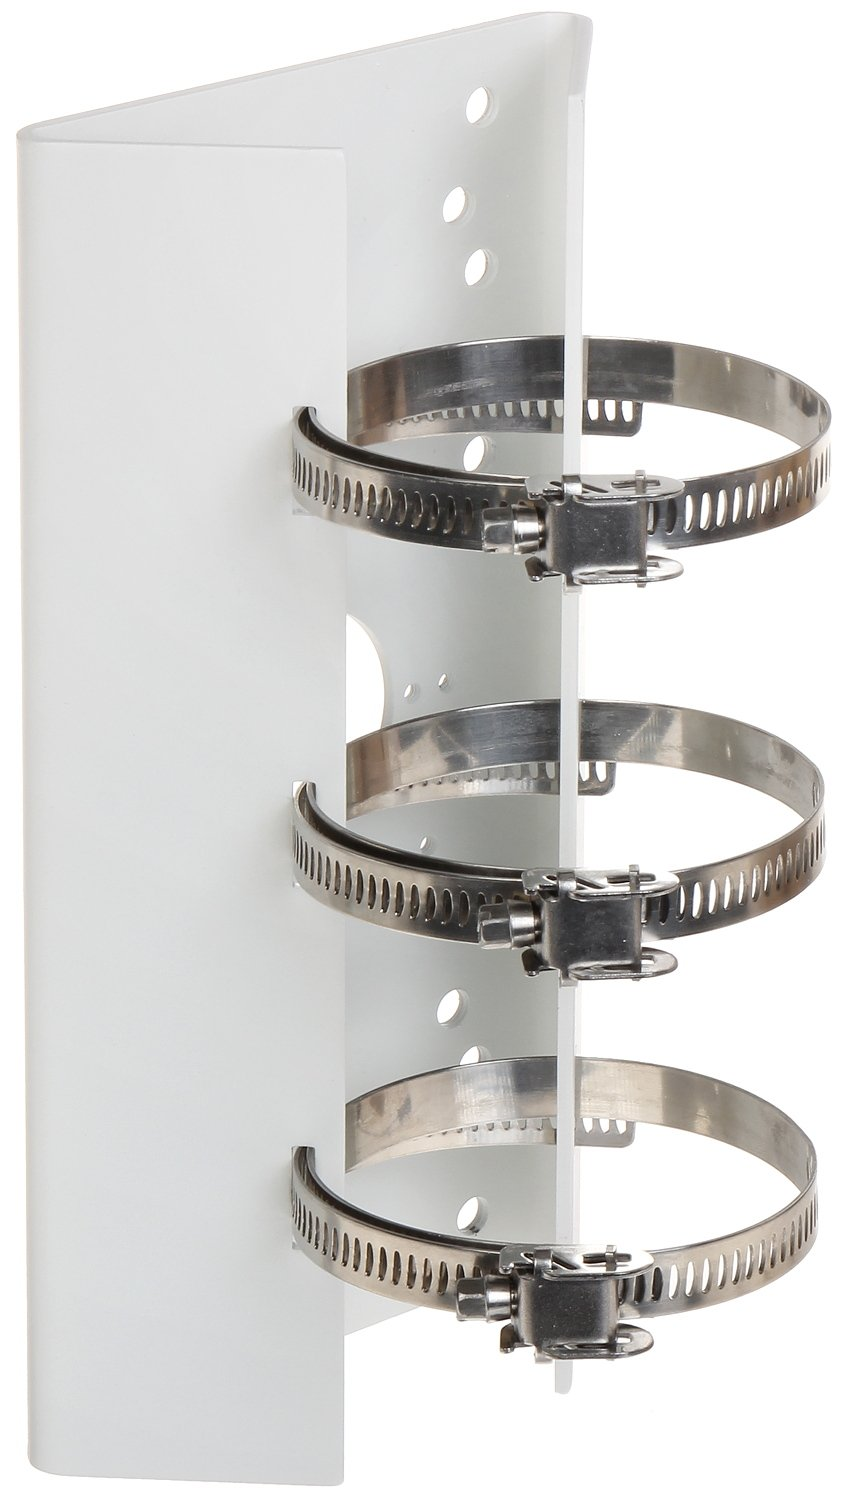 PM DS-1275ZJ Universal Pole Mount Adapter for Most Hikvision Wall Mounts and Cameras - 4 Pack by KENUCO (Image #5)